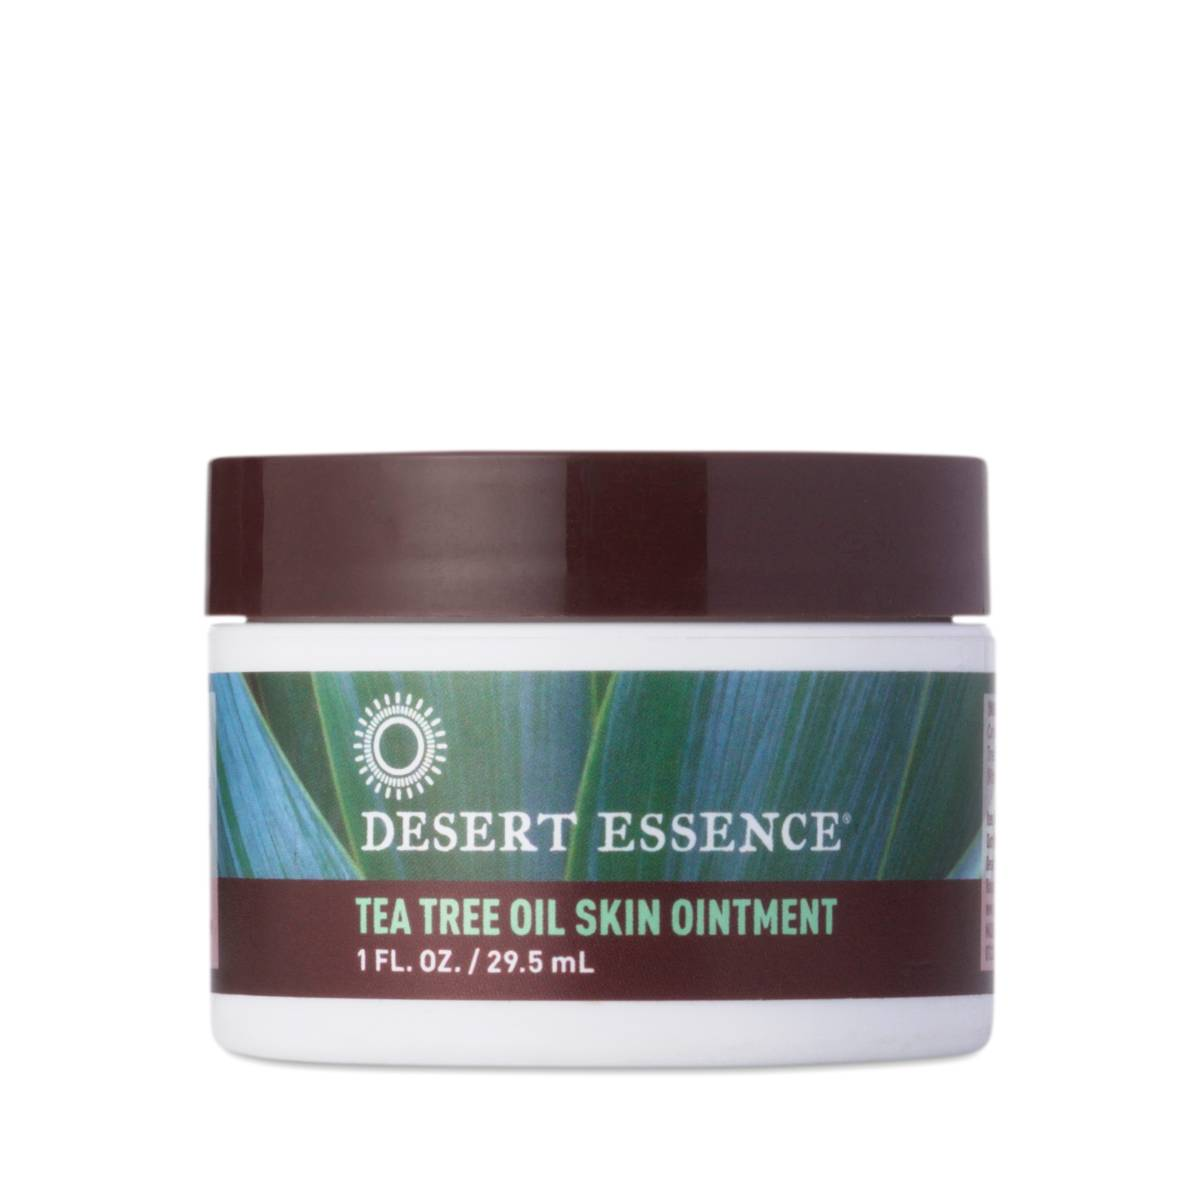 Tea Tree Oil Skin Ointment By Desert Essence Thrive Market